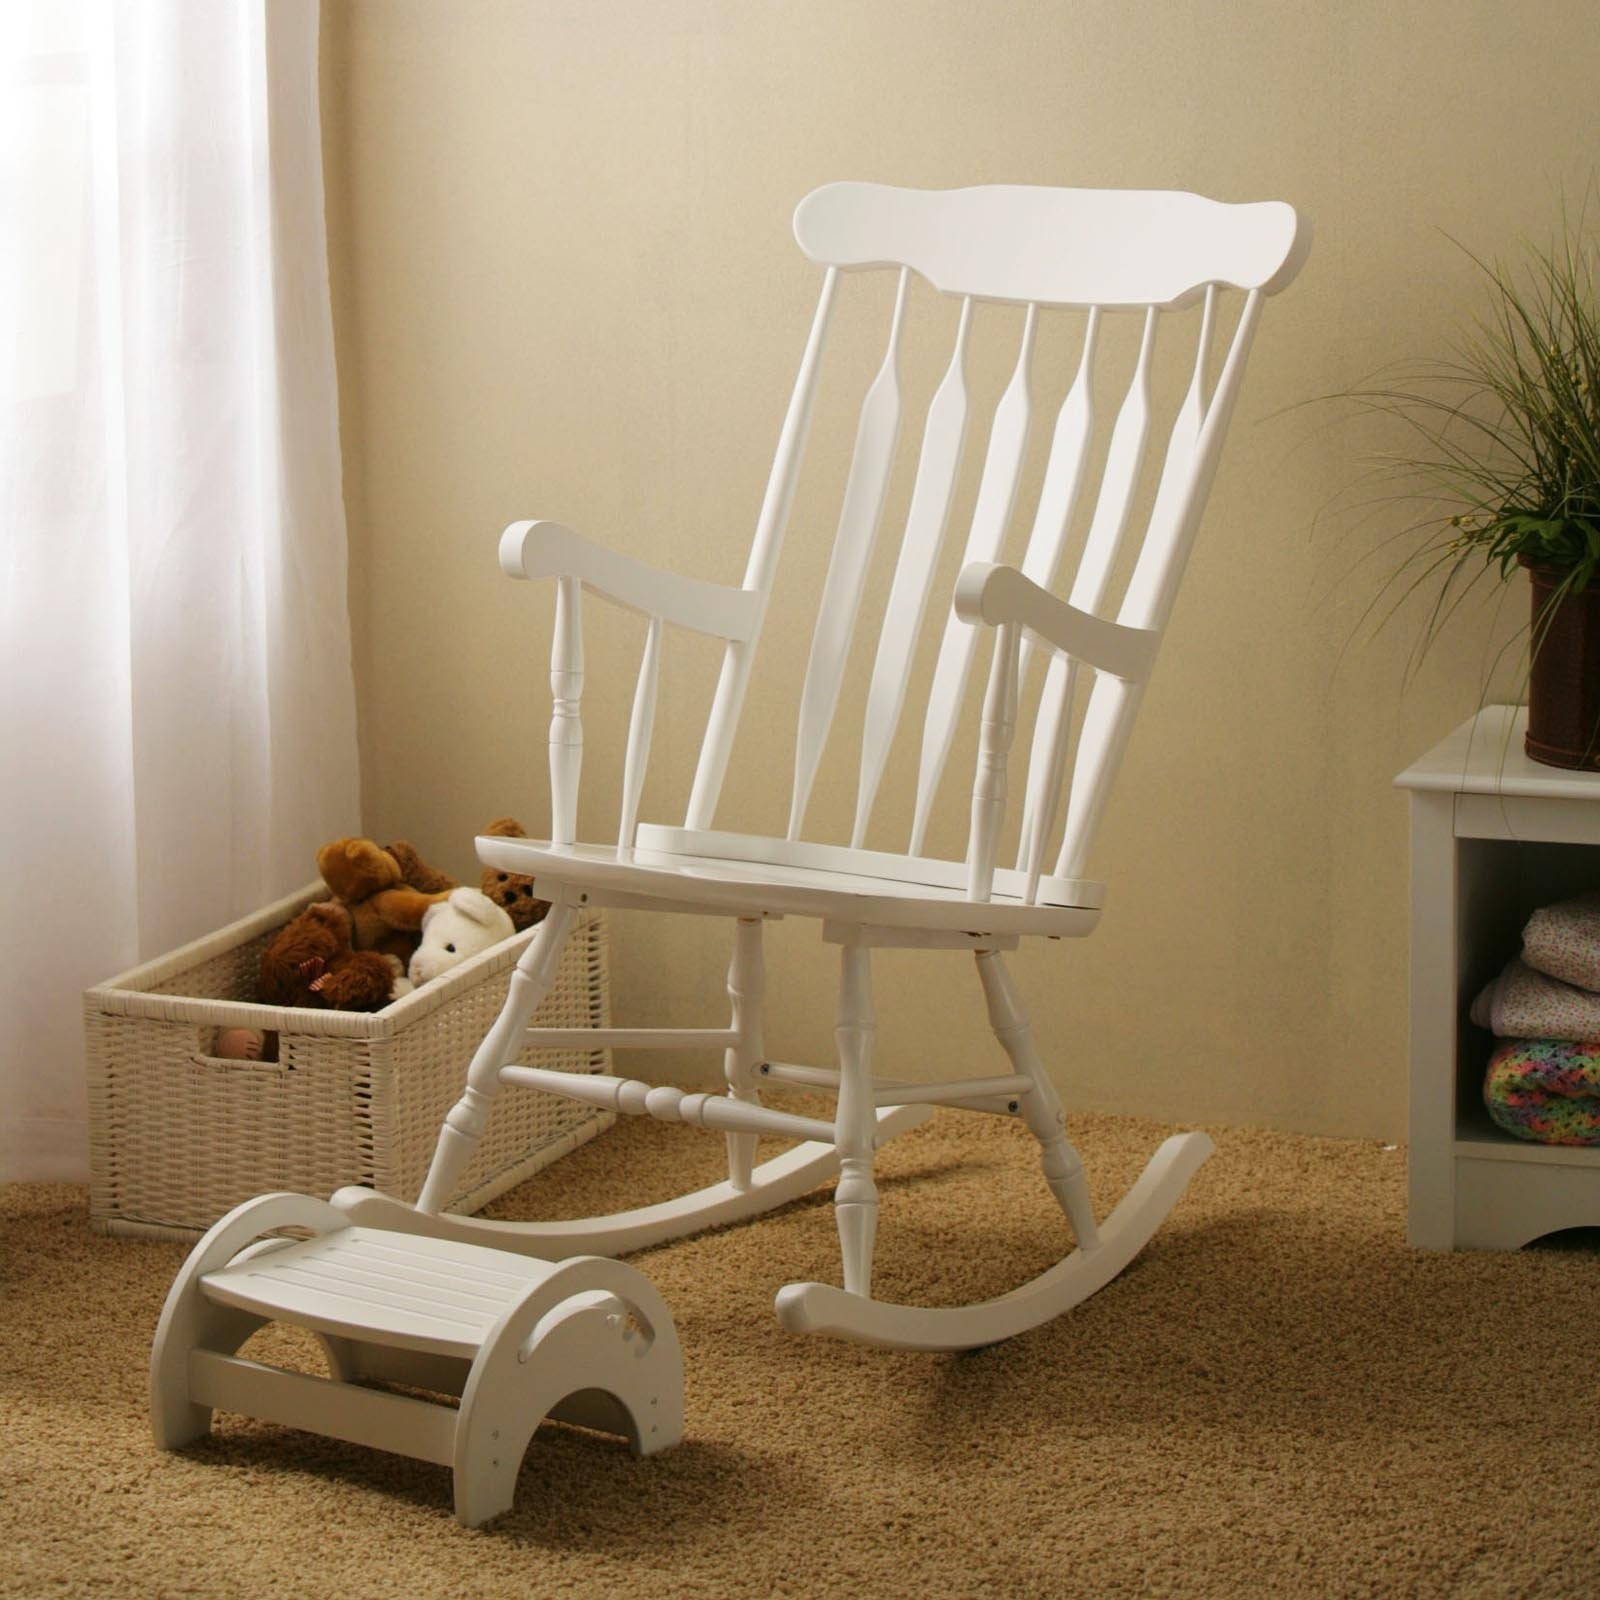 Most Recent Rocking Chairs With Footrest Inside Rocking Chair With Footrest – Kevinjohnsonformayor (View 10 of 15)